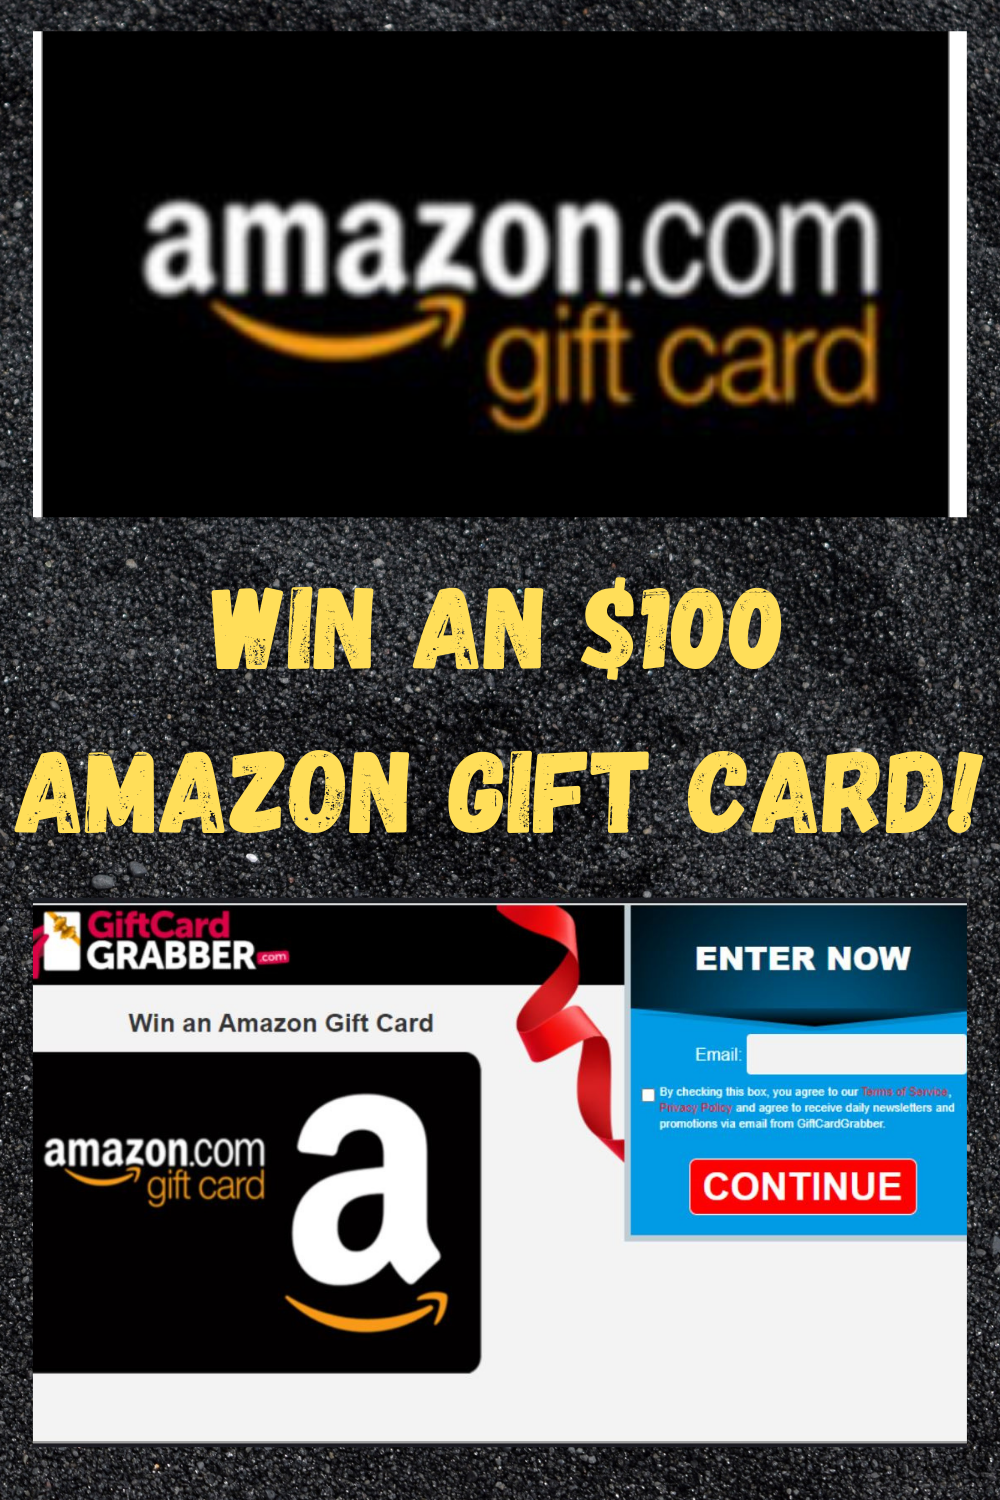 Giftcardgrabber Get Amazon 100 For Usa Free Gift Cards Online Mastercard Gift Card Amazon Gift Card Free